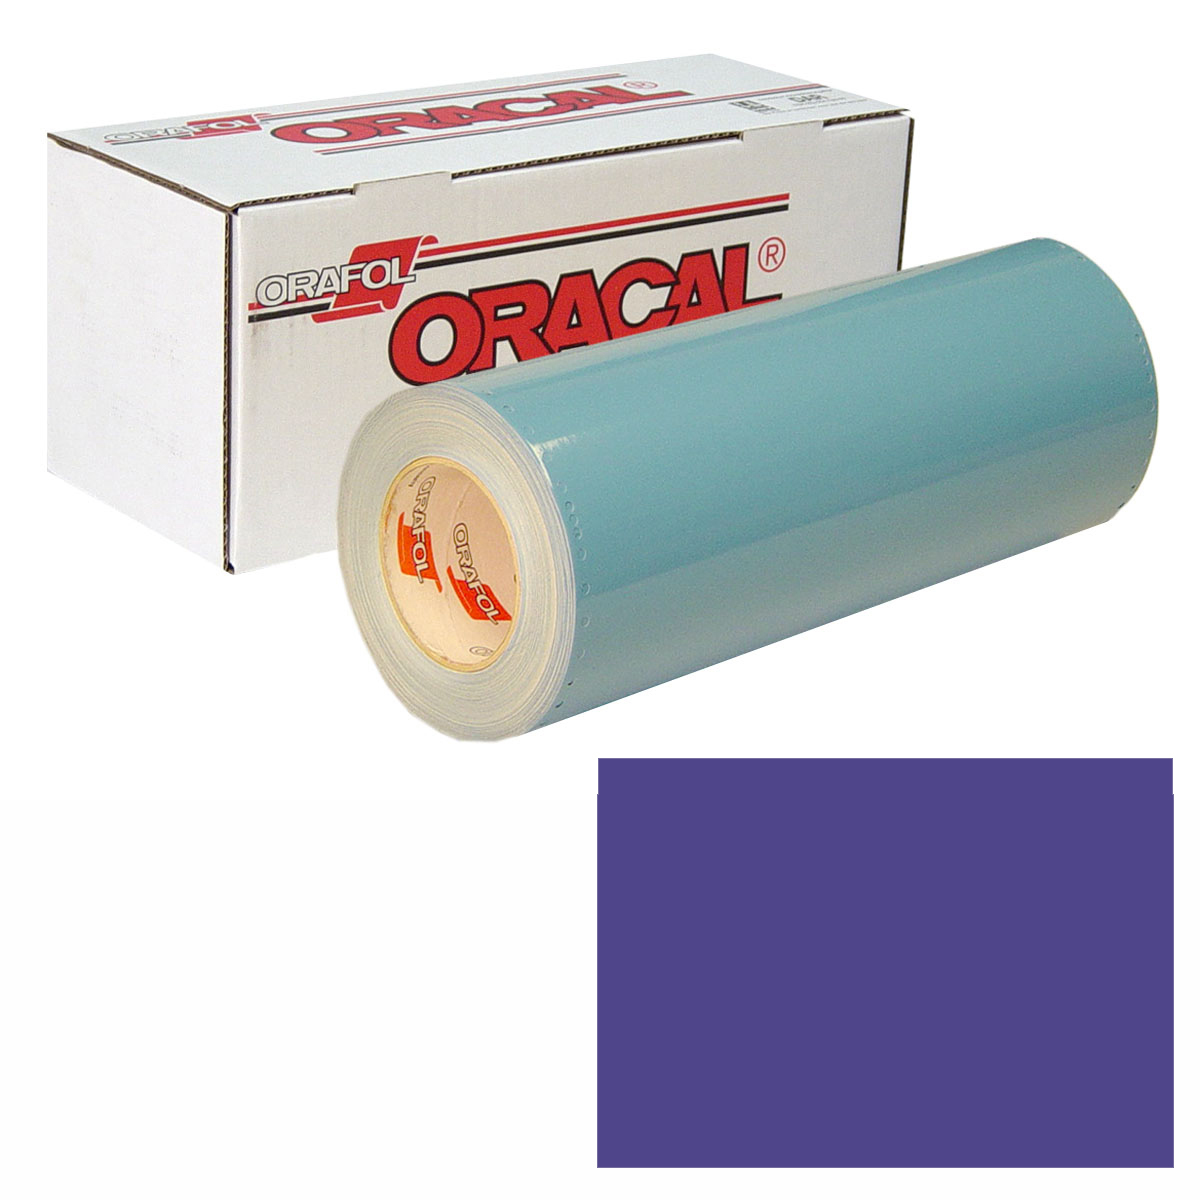 ORACAL 751 15In X 50Yd 518 Steel Blue